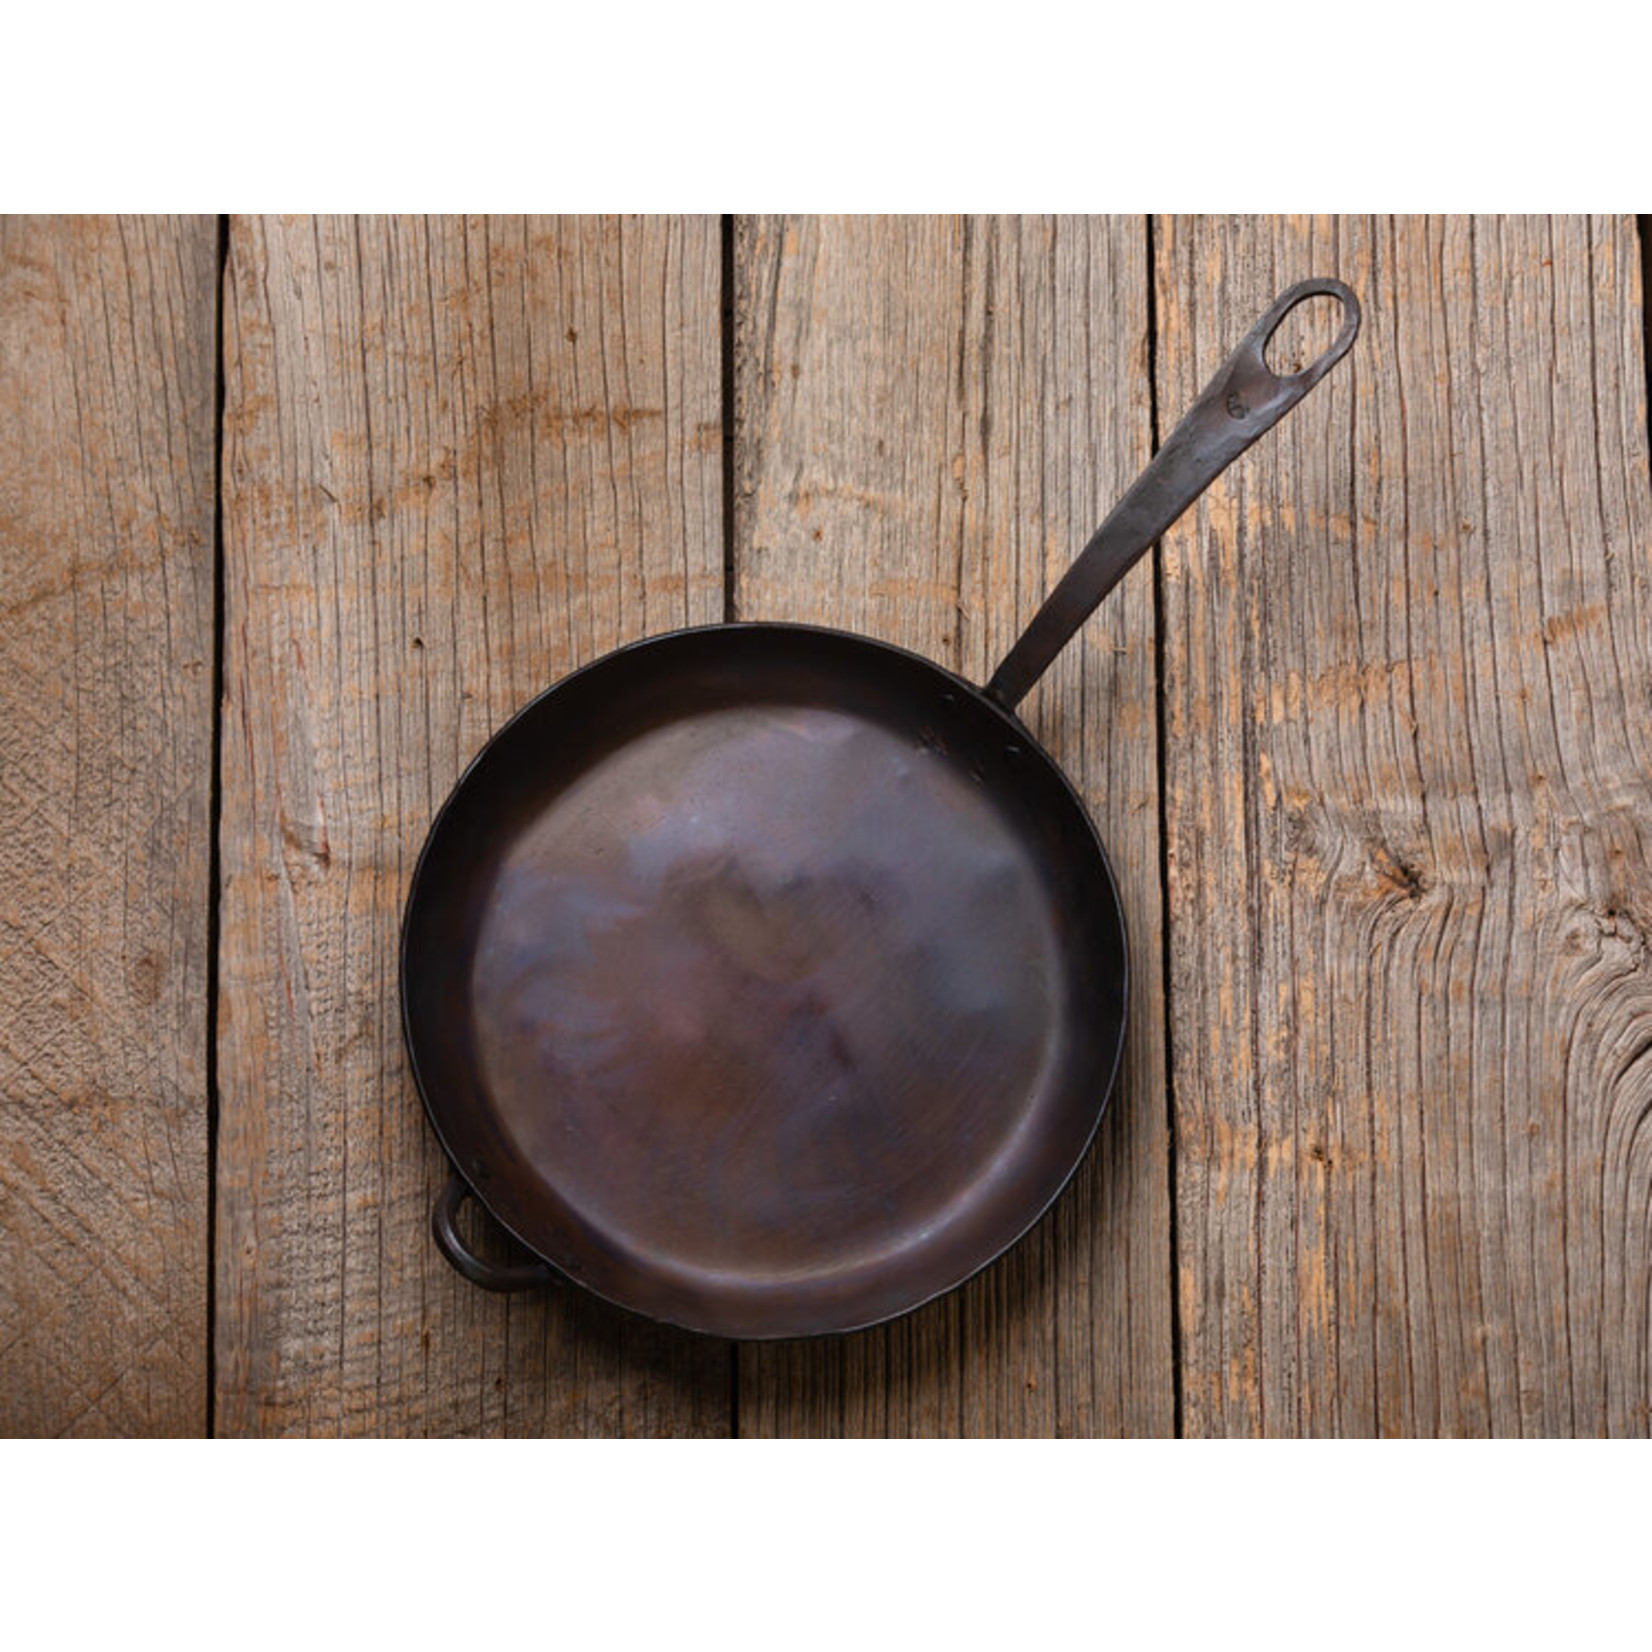 Shira Forge Hand Forged Skillet